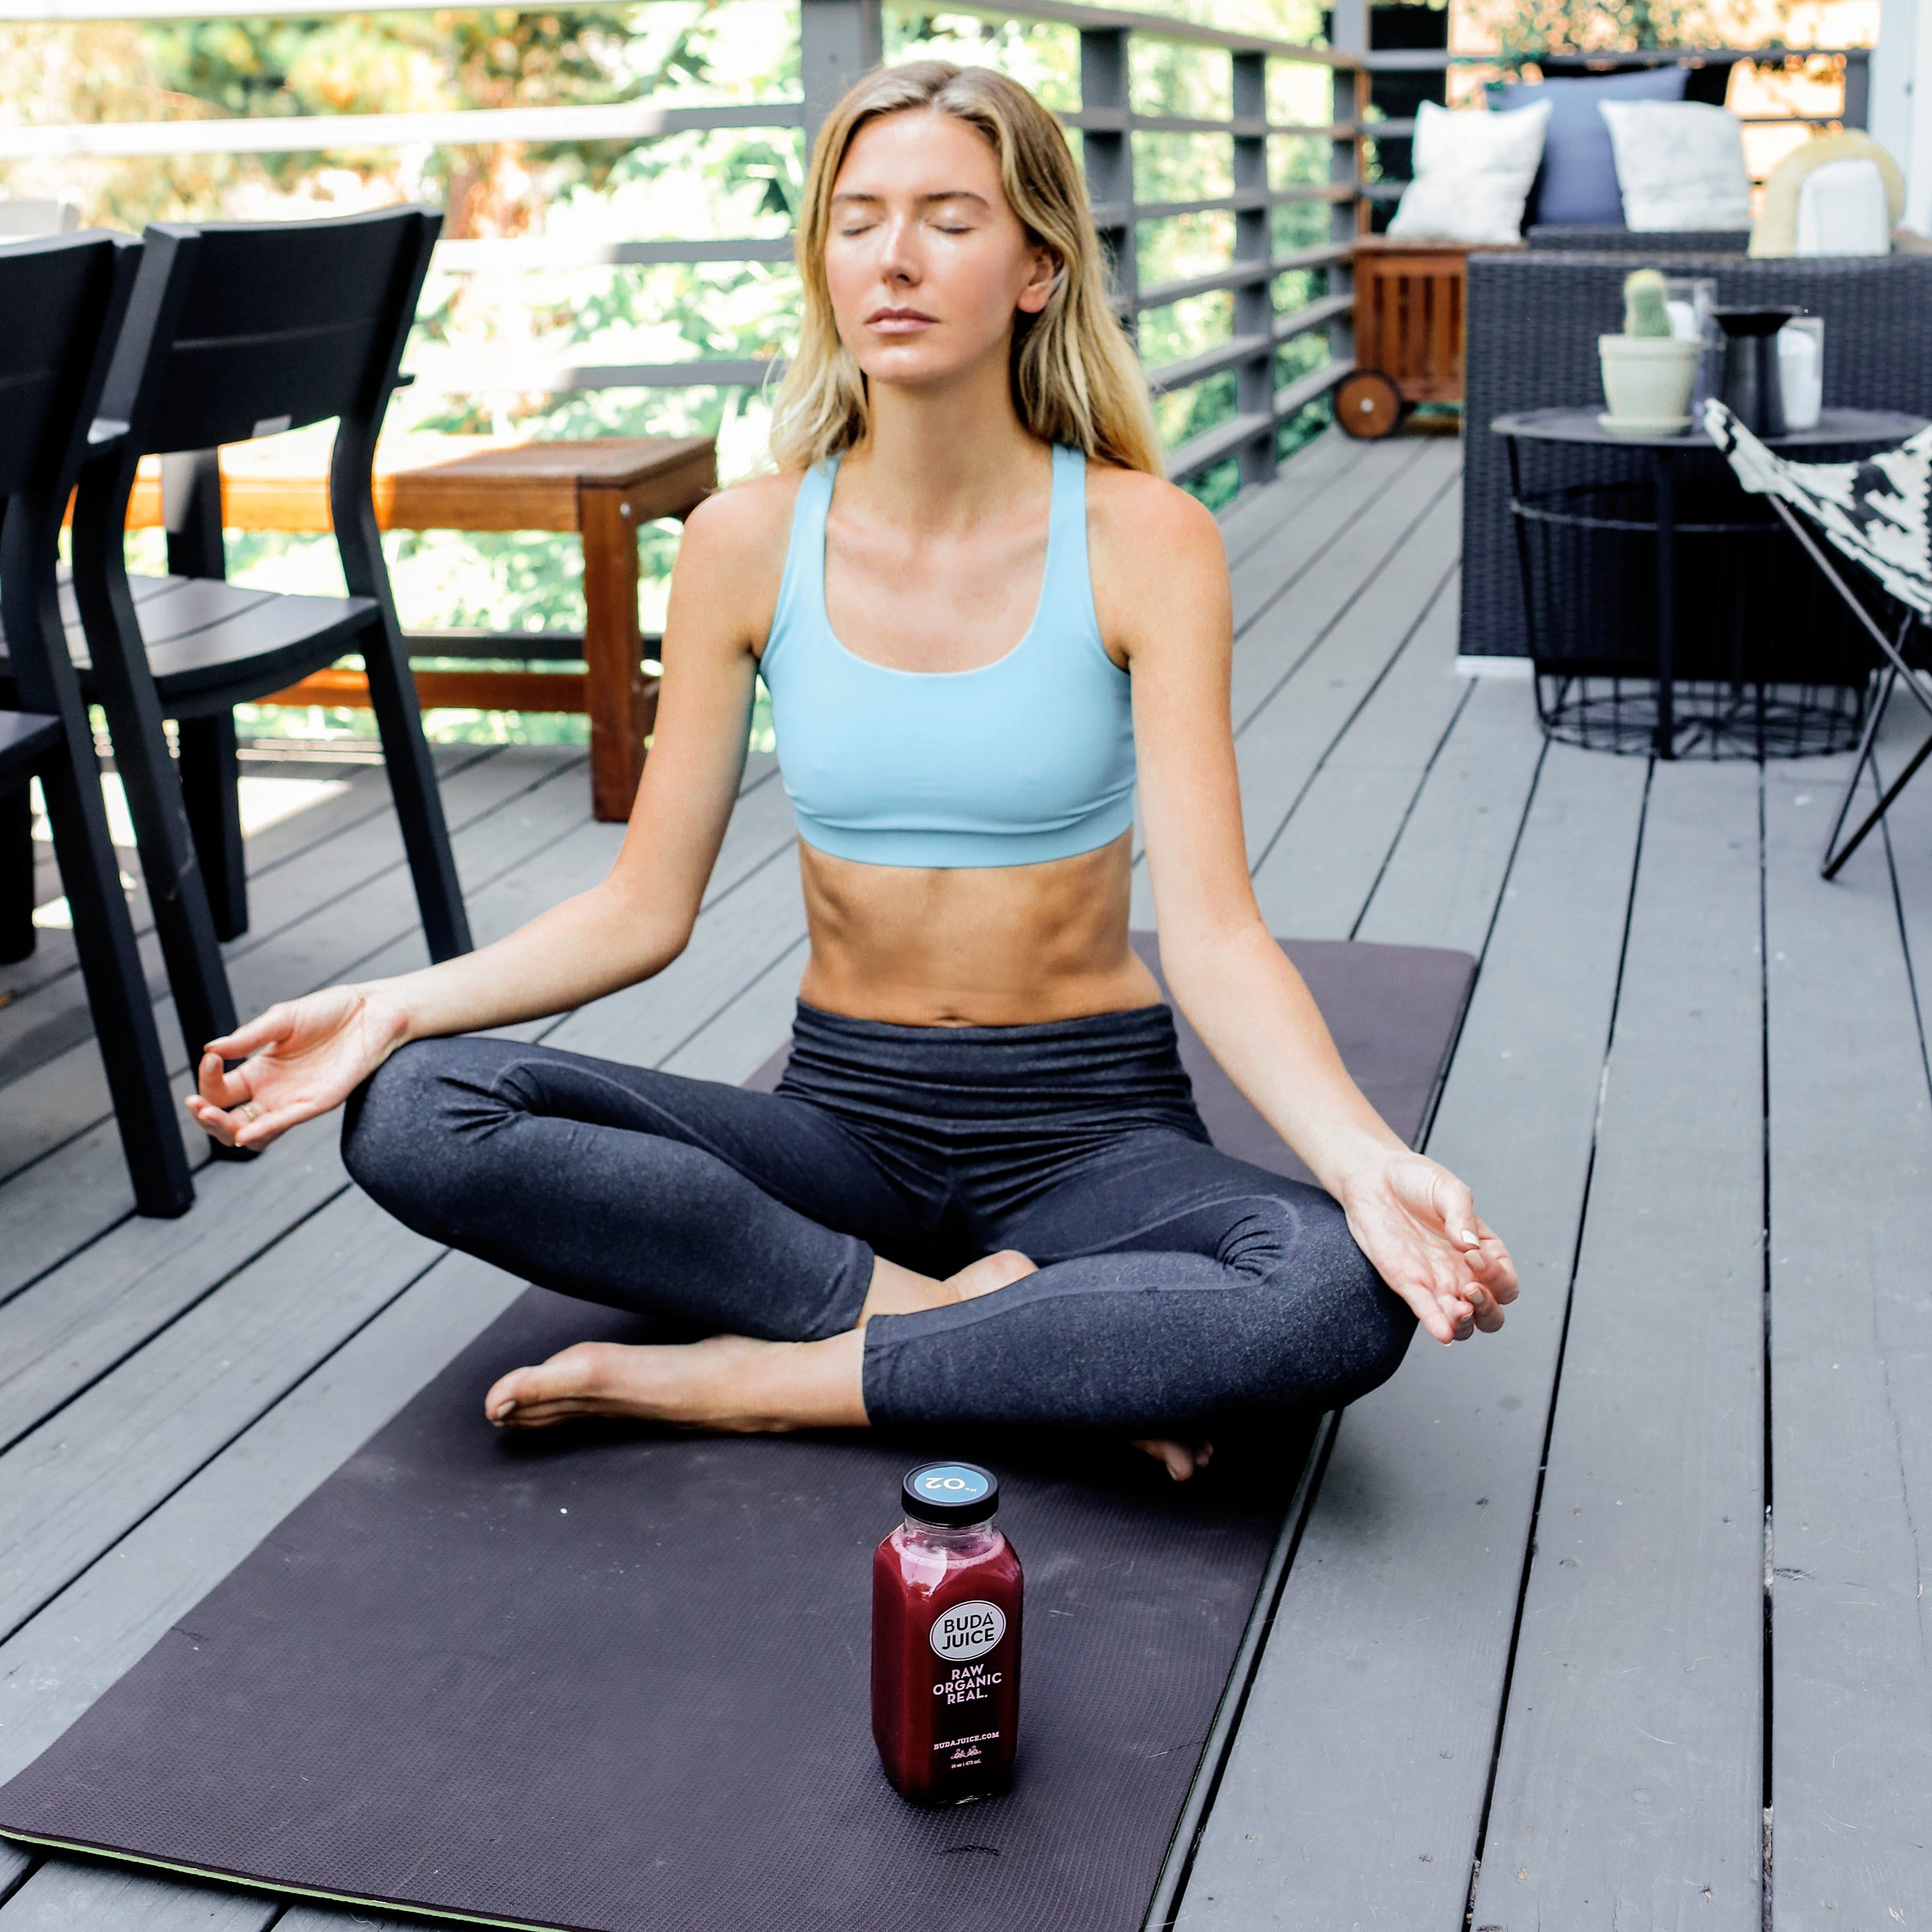 buda juice and yoga